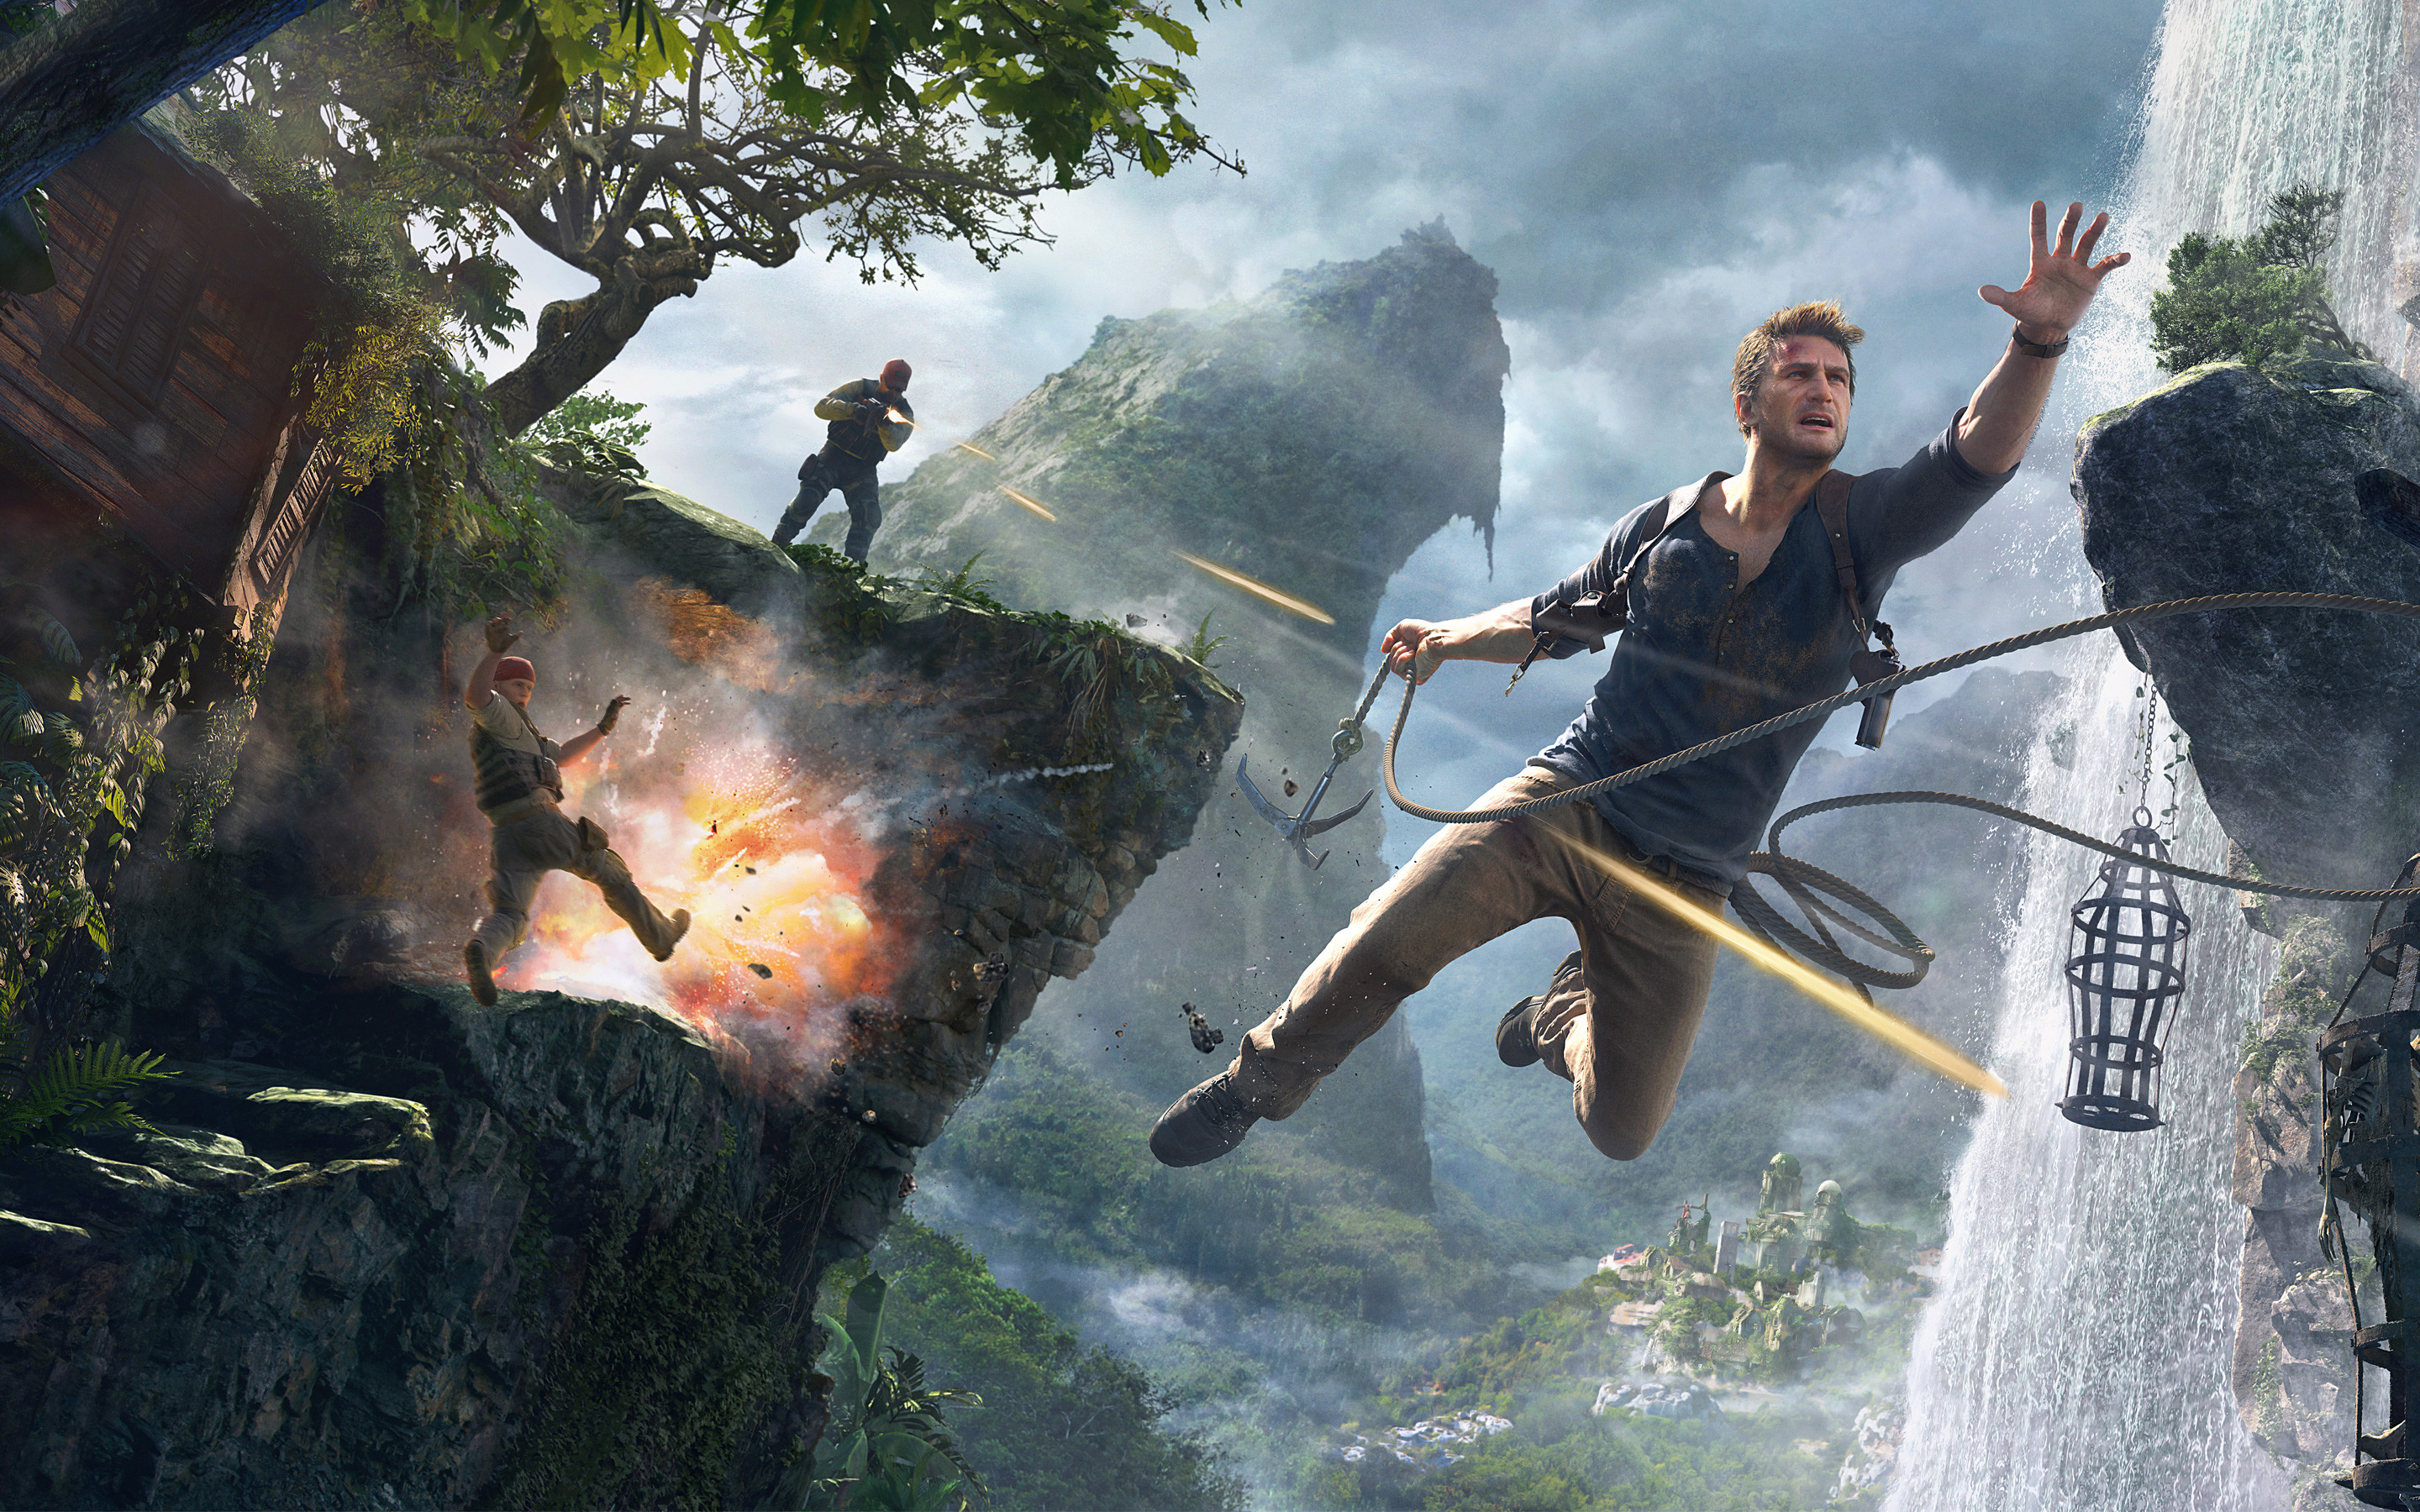 2880x1800 Uncharted 4 A Thief's End 4K 8K HD